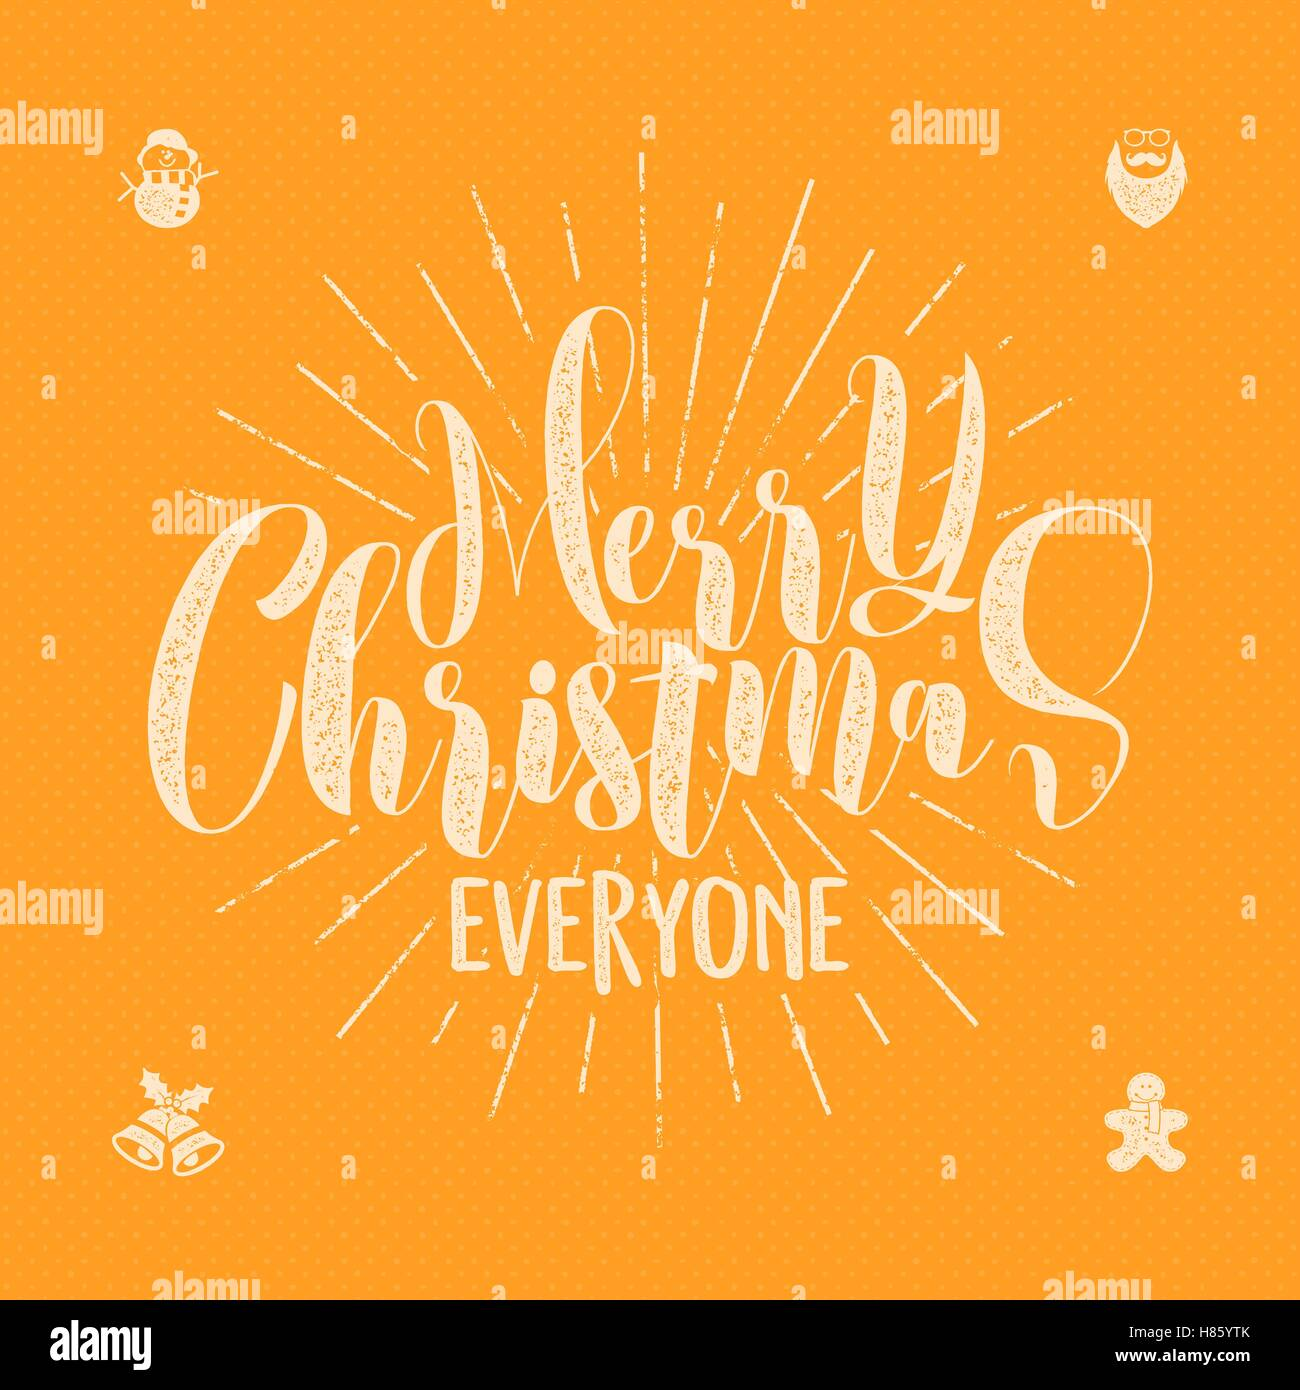 Merry christmas everyone lettering holiday wishe sayings and stock merry christmas everyone lettering holiday wishe sayings and vintage label seasons greetings calligraphy seasonal typography design m4hsunfo